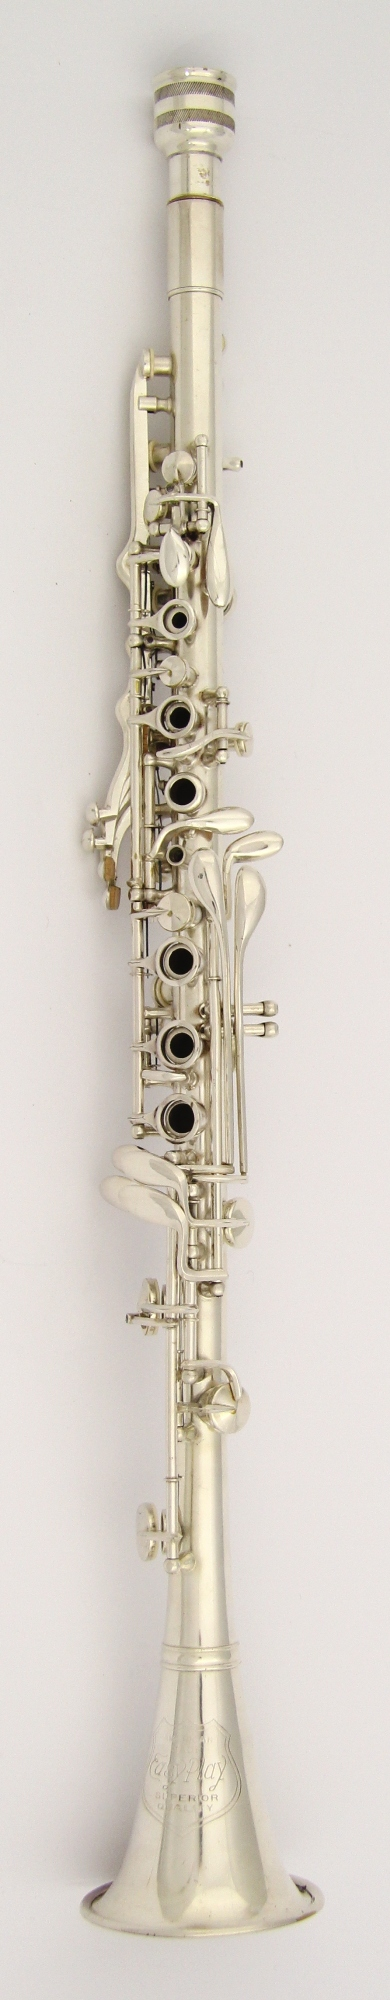 clarinet history The clarinet is a type of woodwind instrument that has a straight cylindrical tube with a flaring bell and a single-reed mouthpiece a person who plays the clarinet is called a clarinetist or clarinettist.